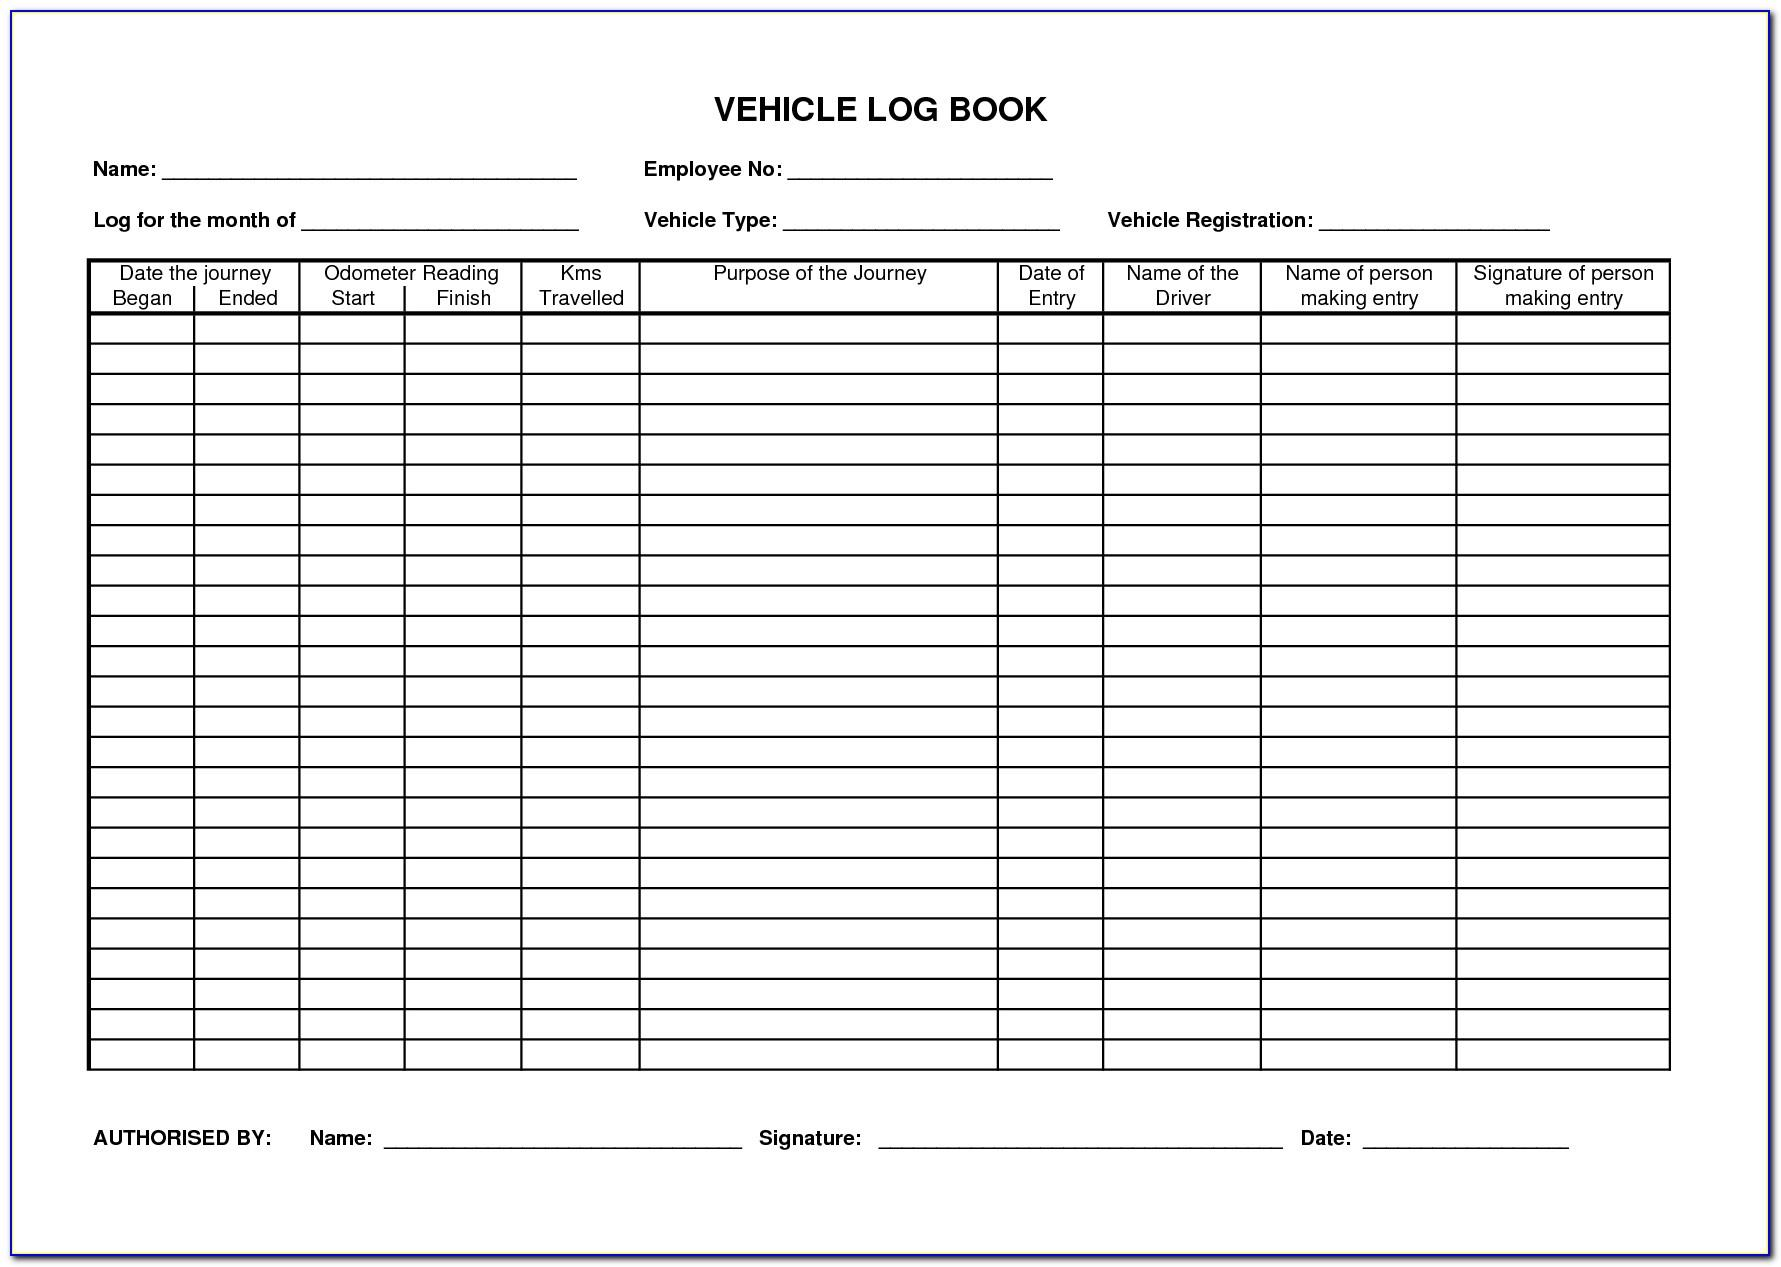 Motor Vehicle Log Book Template Ato